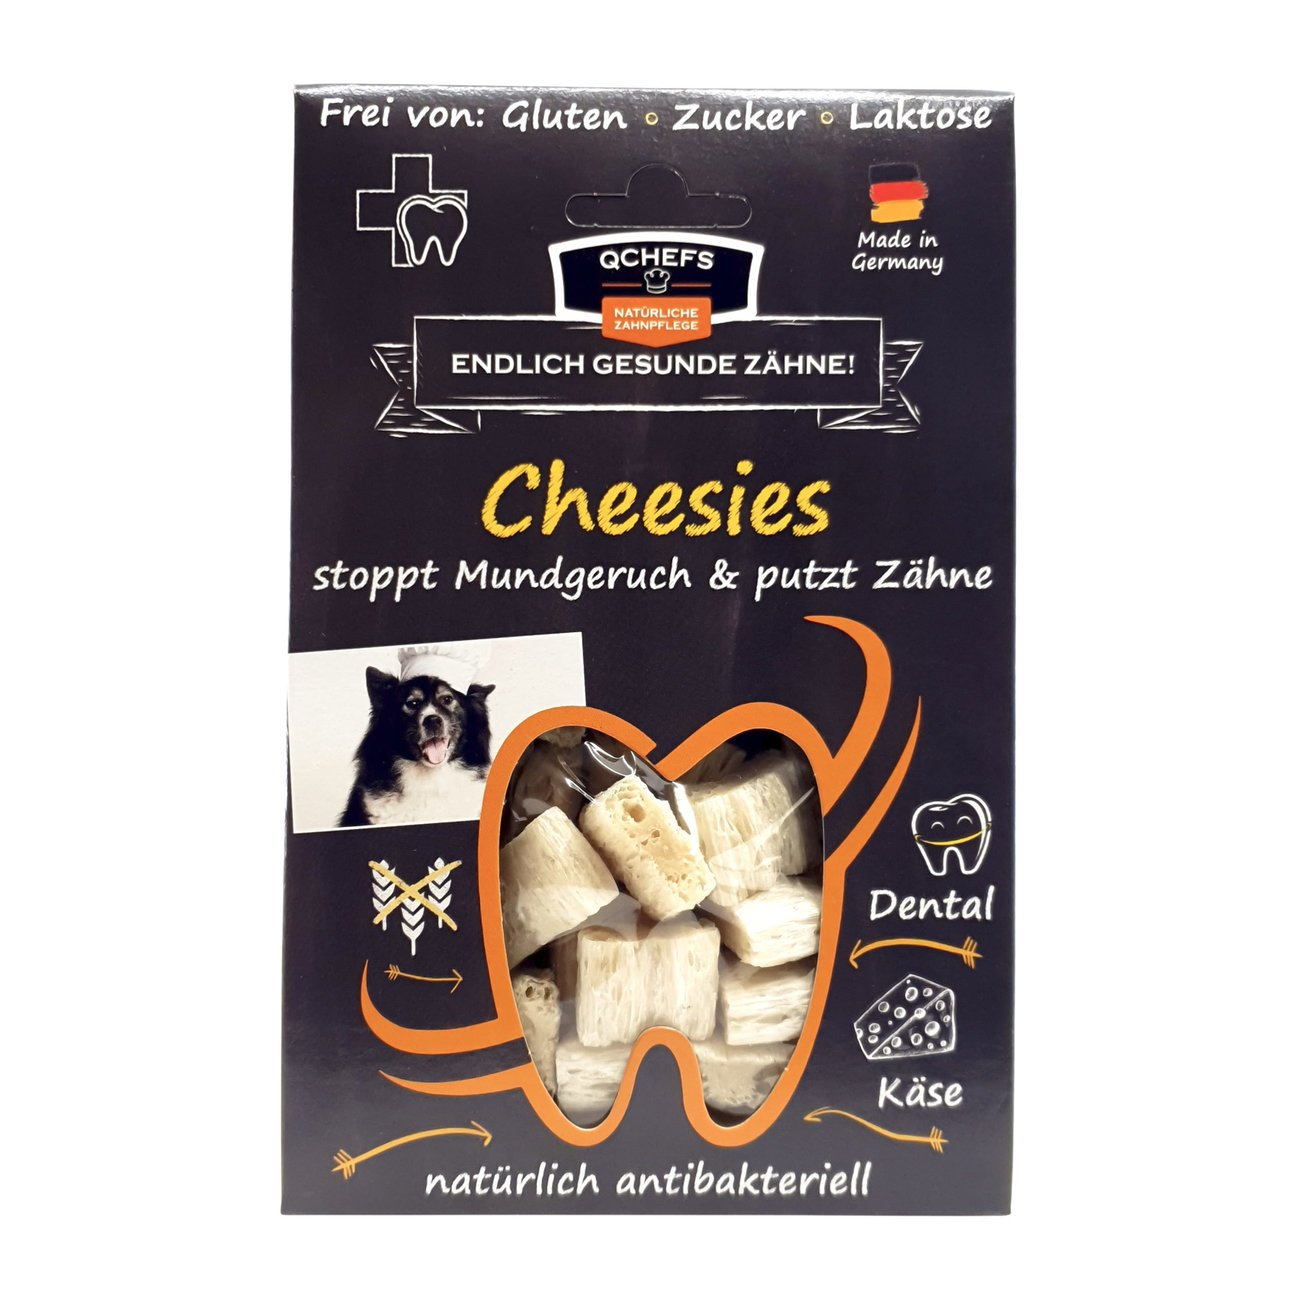 Qchefs Hunde Snack Cheesies